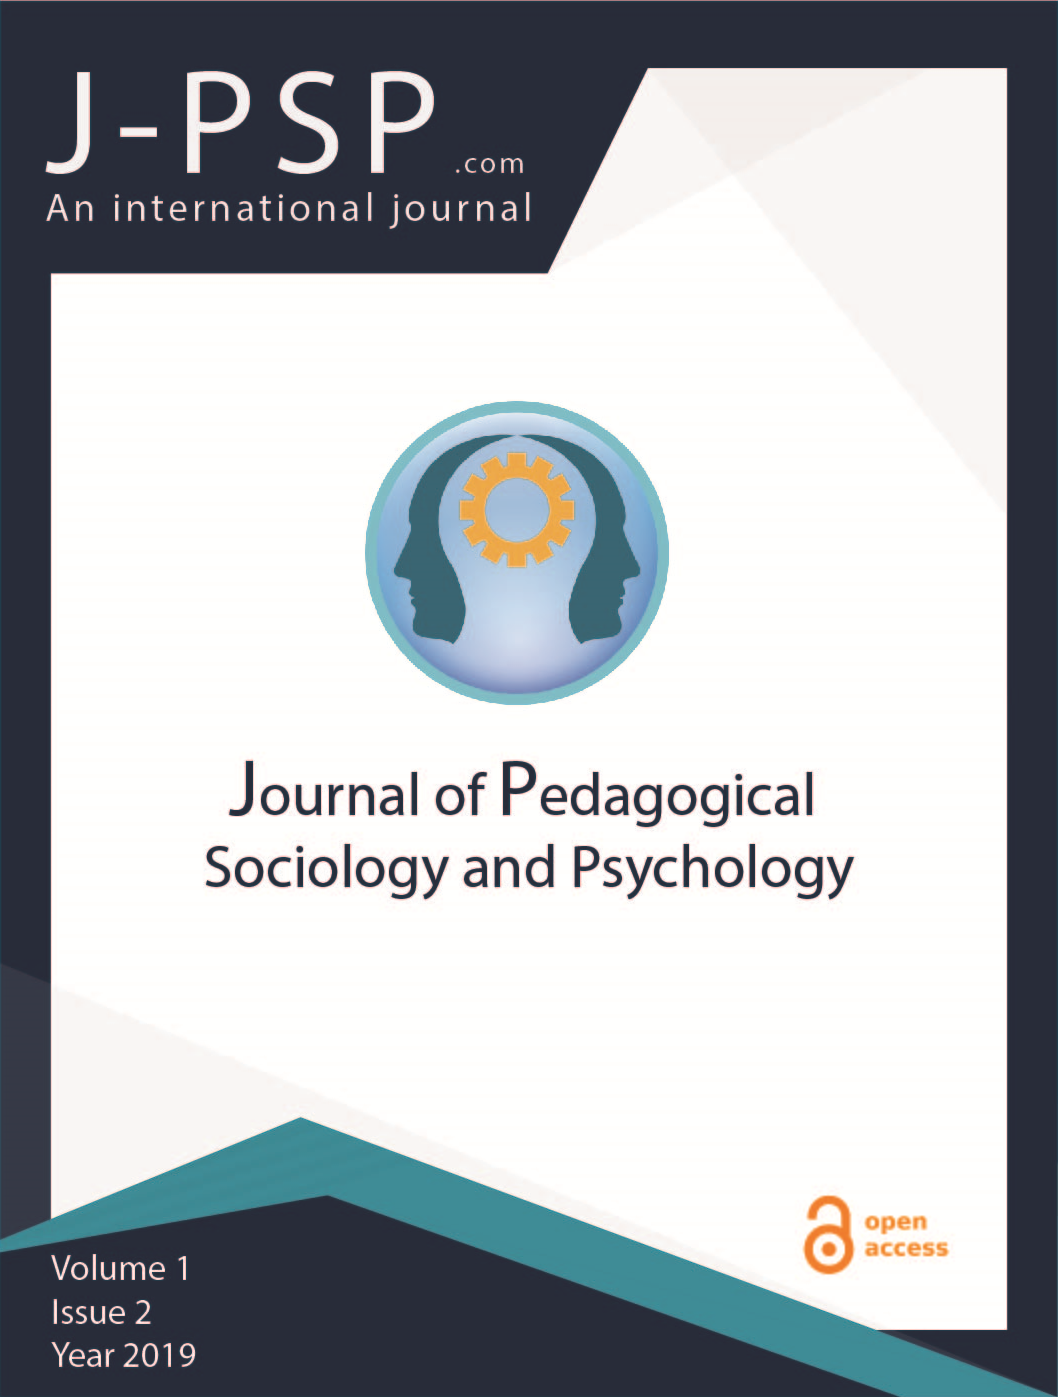 Journal of Pedagogical Sociology and Psychology